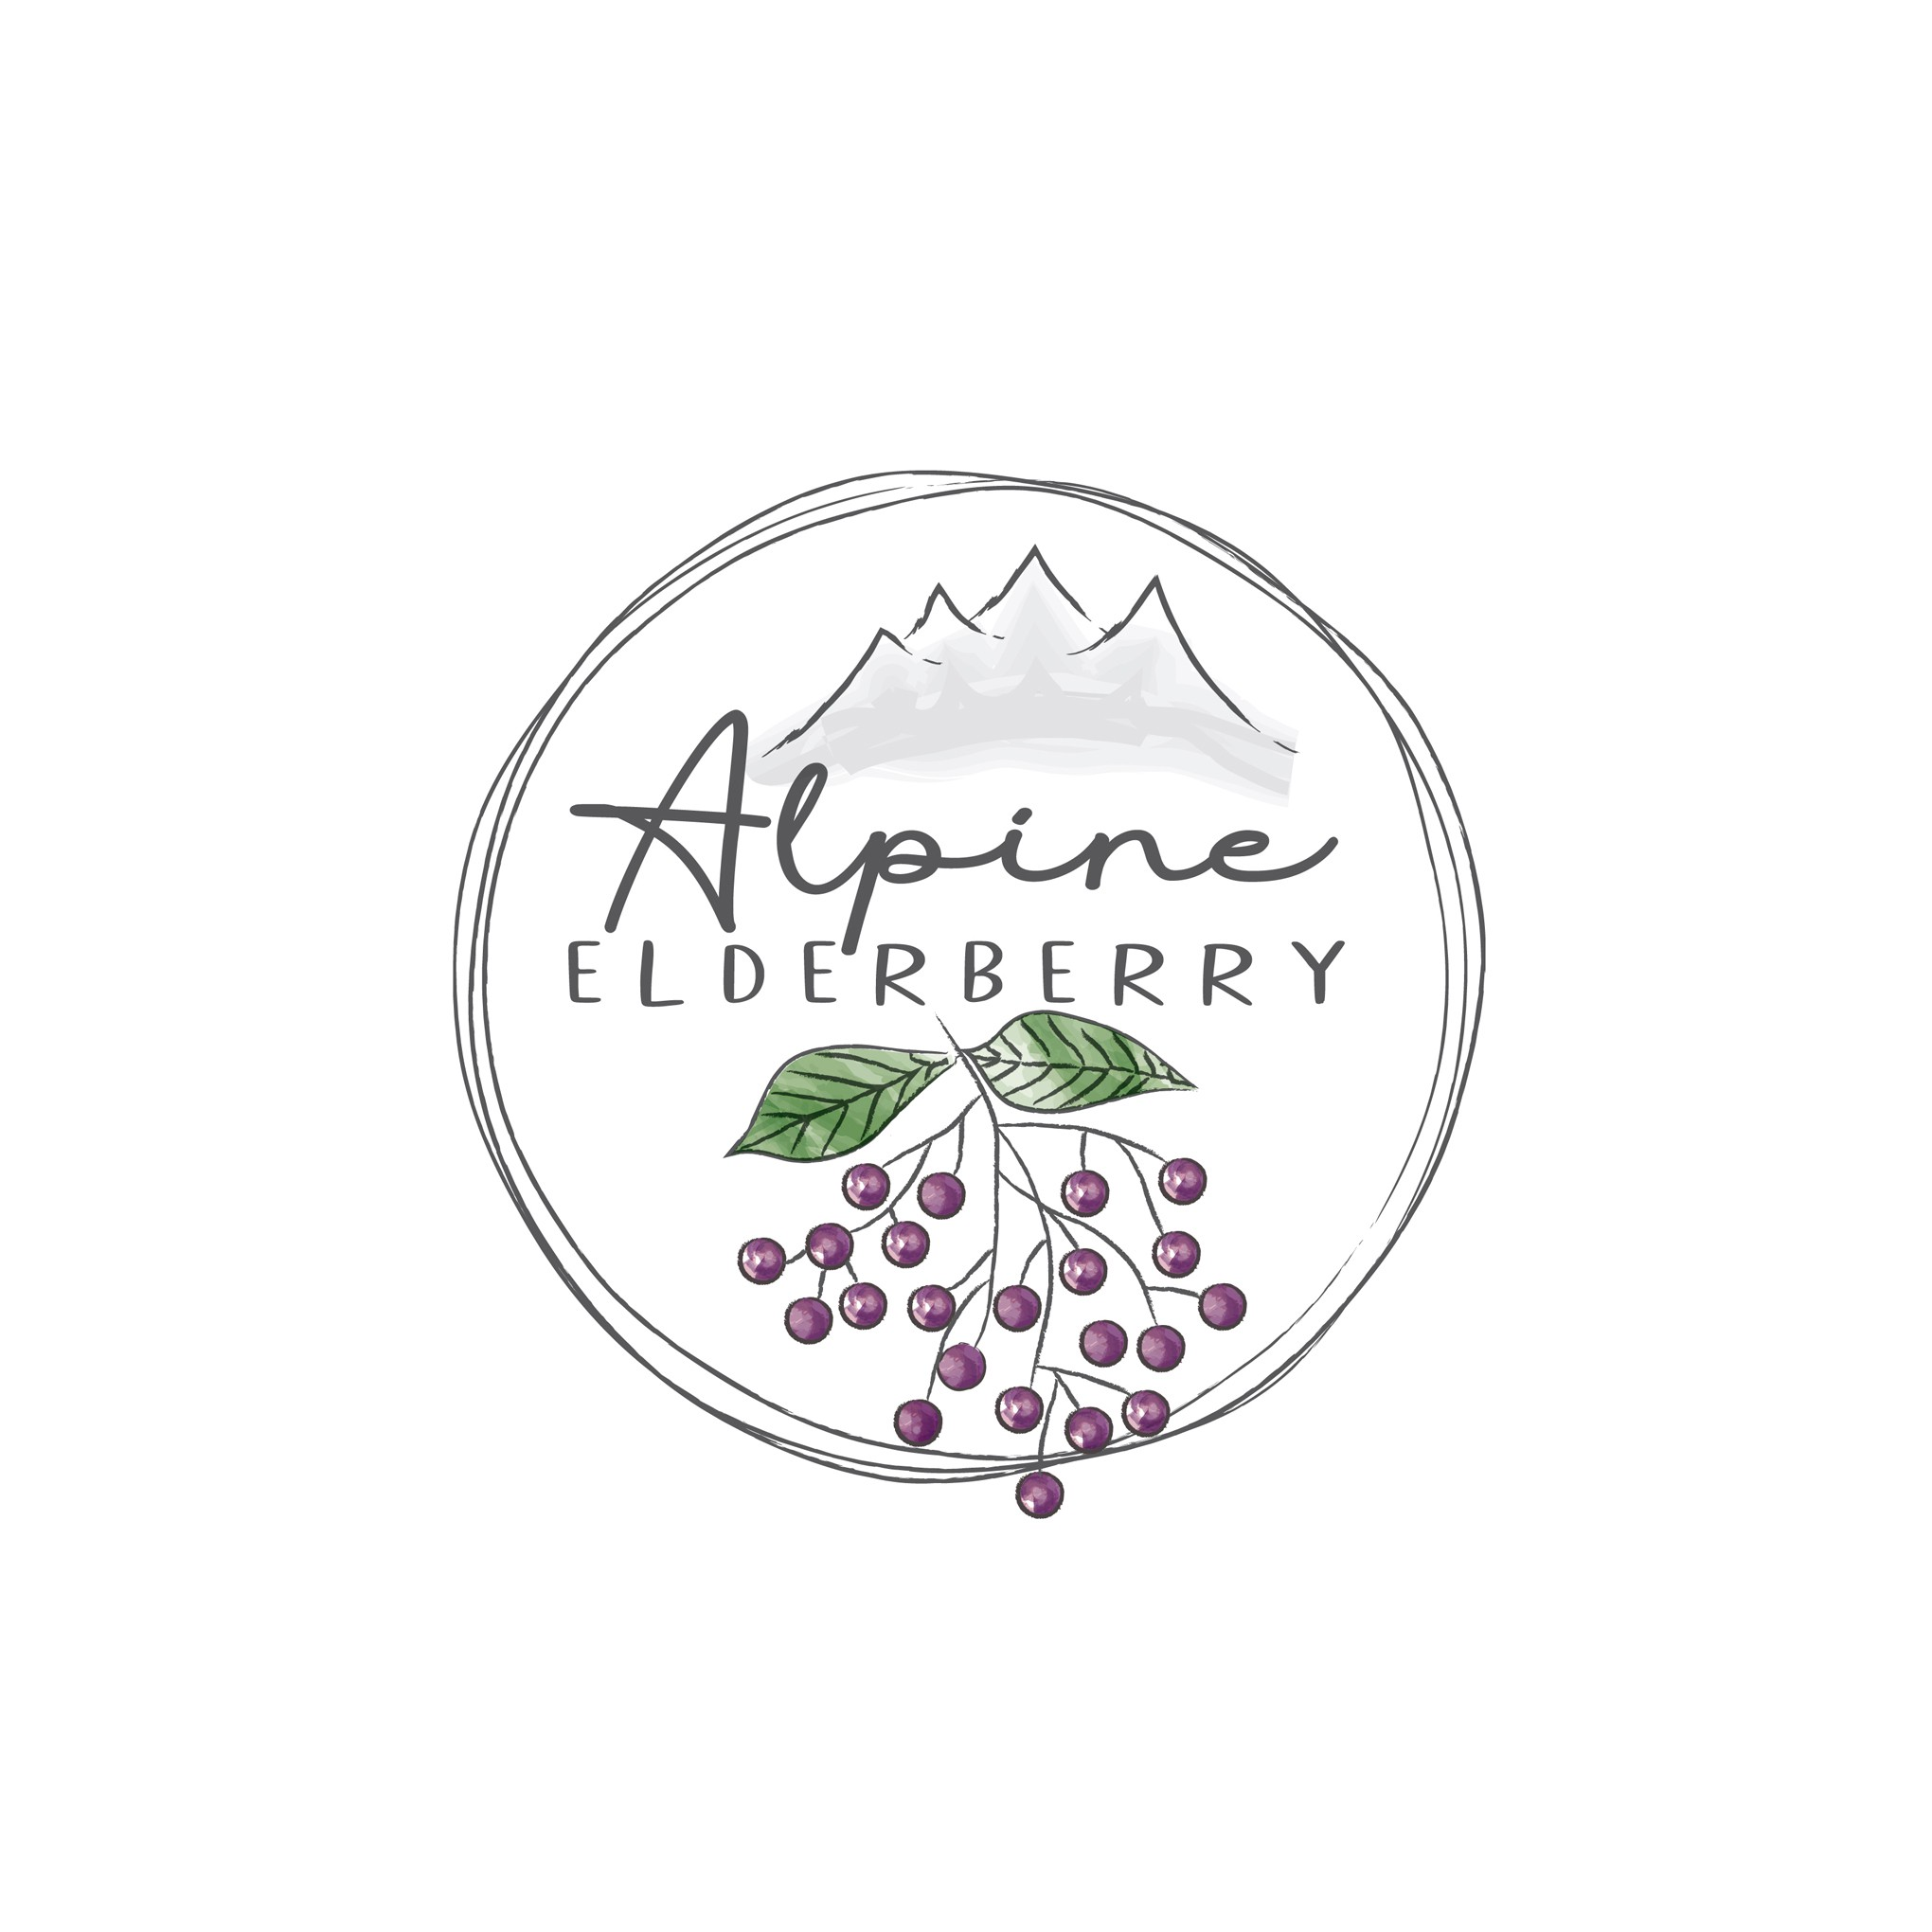 Logo for Elderberry Syrup small business startup